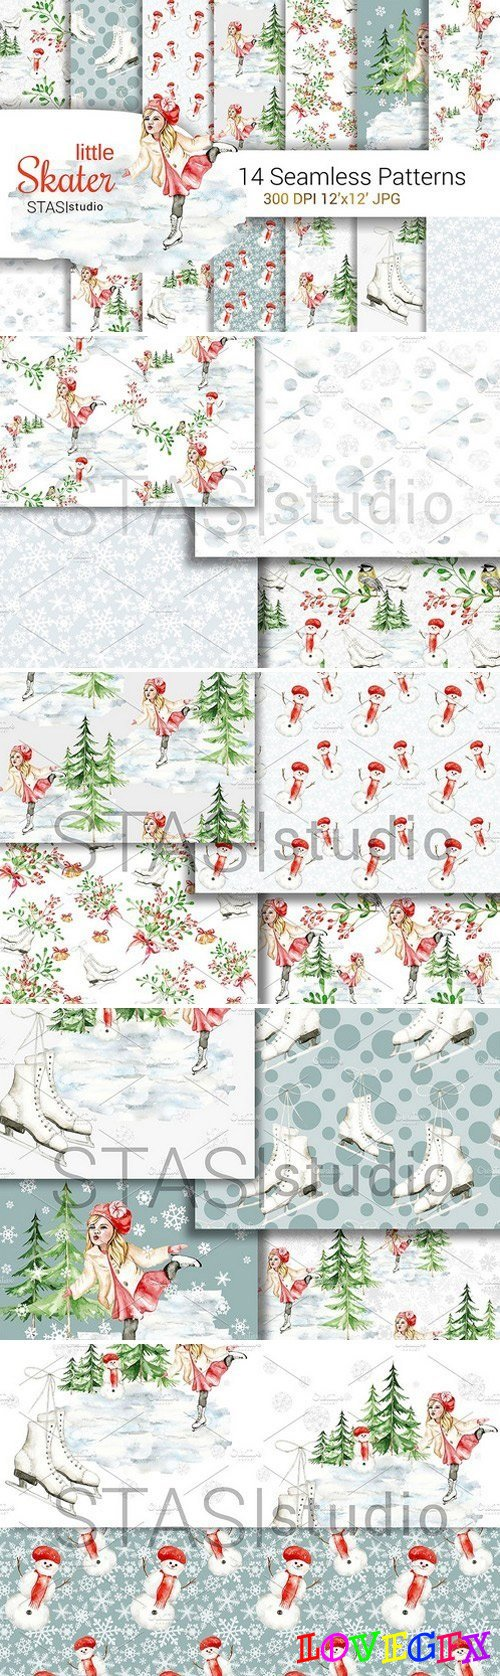 Christmas Digital Paper Pack 1890105